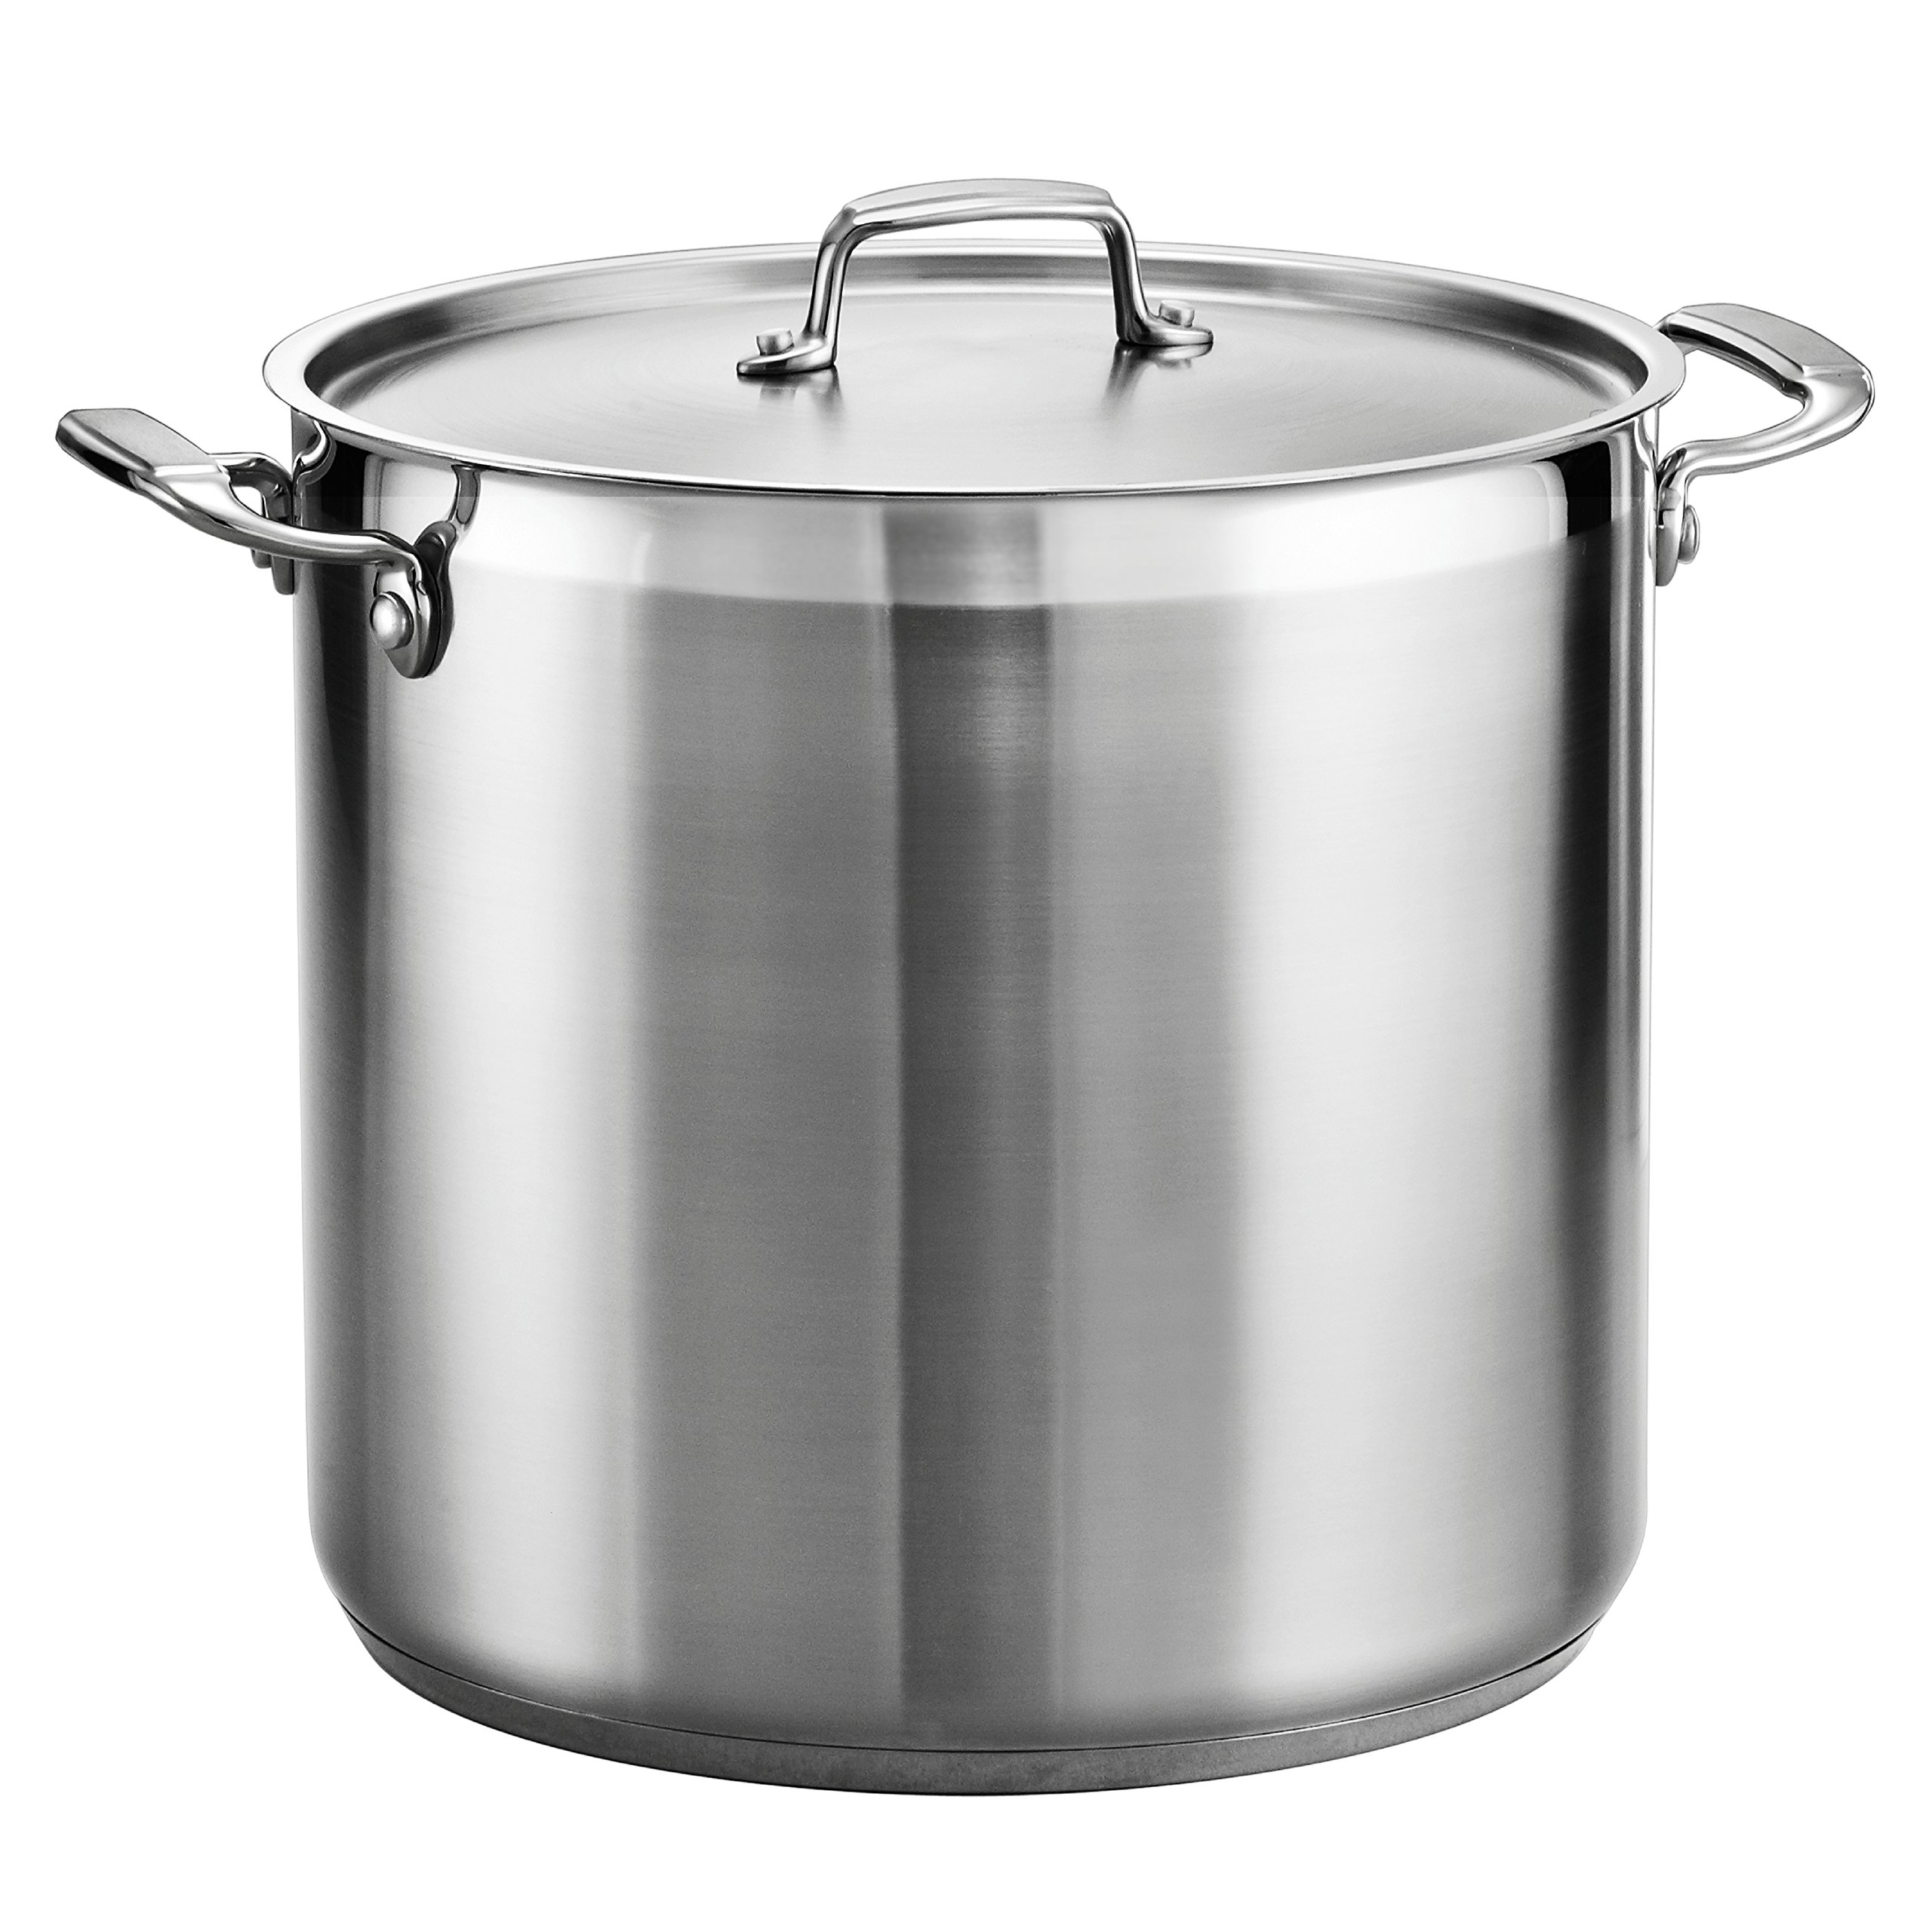 Tramontina 80120/002DS Tramontina Gourmet Stainless Steel Covered Stock Pot, 20-Quart by Tramontina